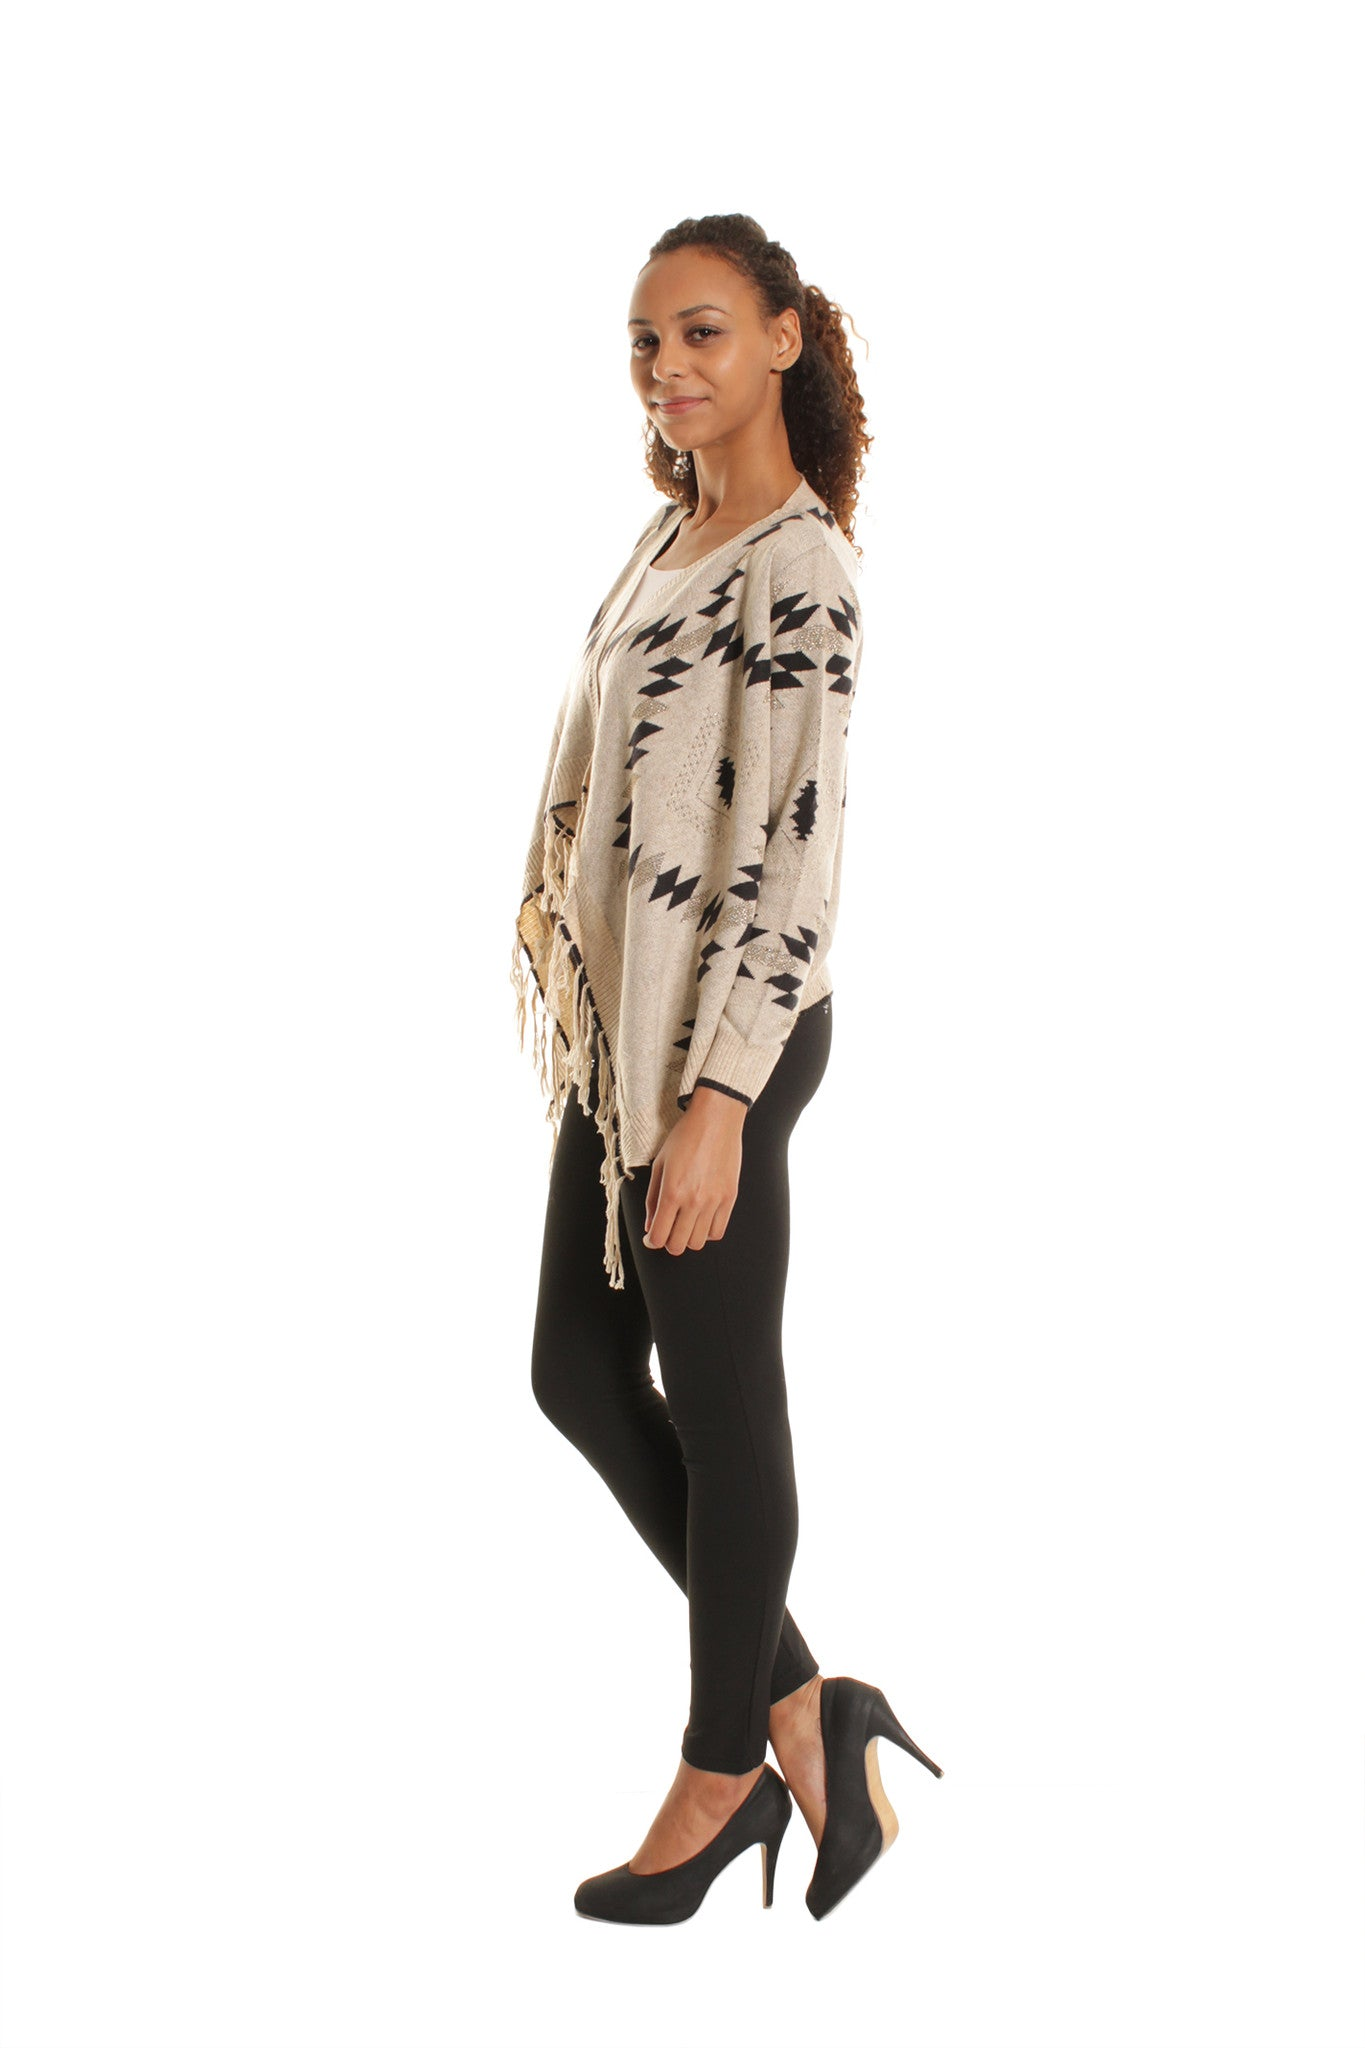 Cream Geometric Print Knitted Fringed Tassle Cardigan